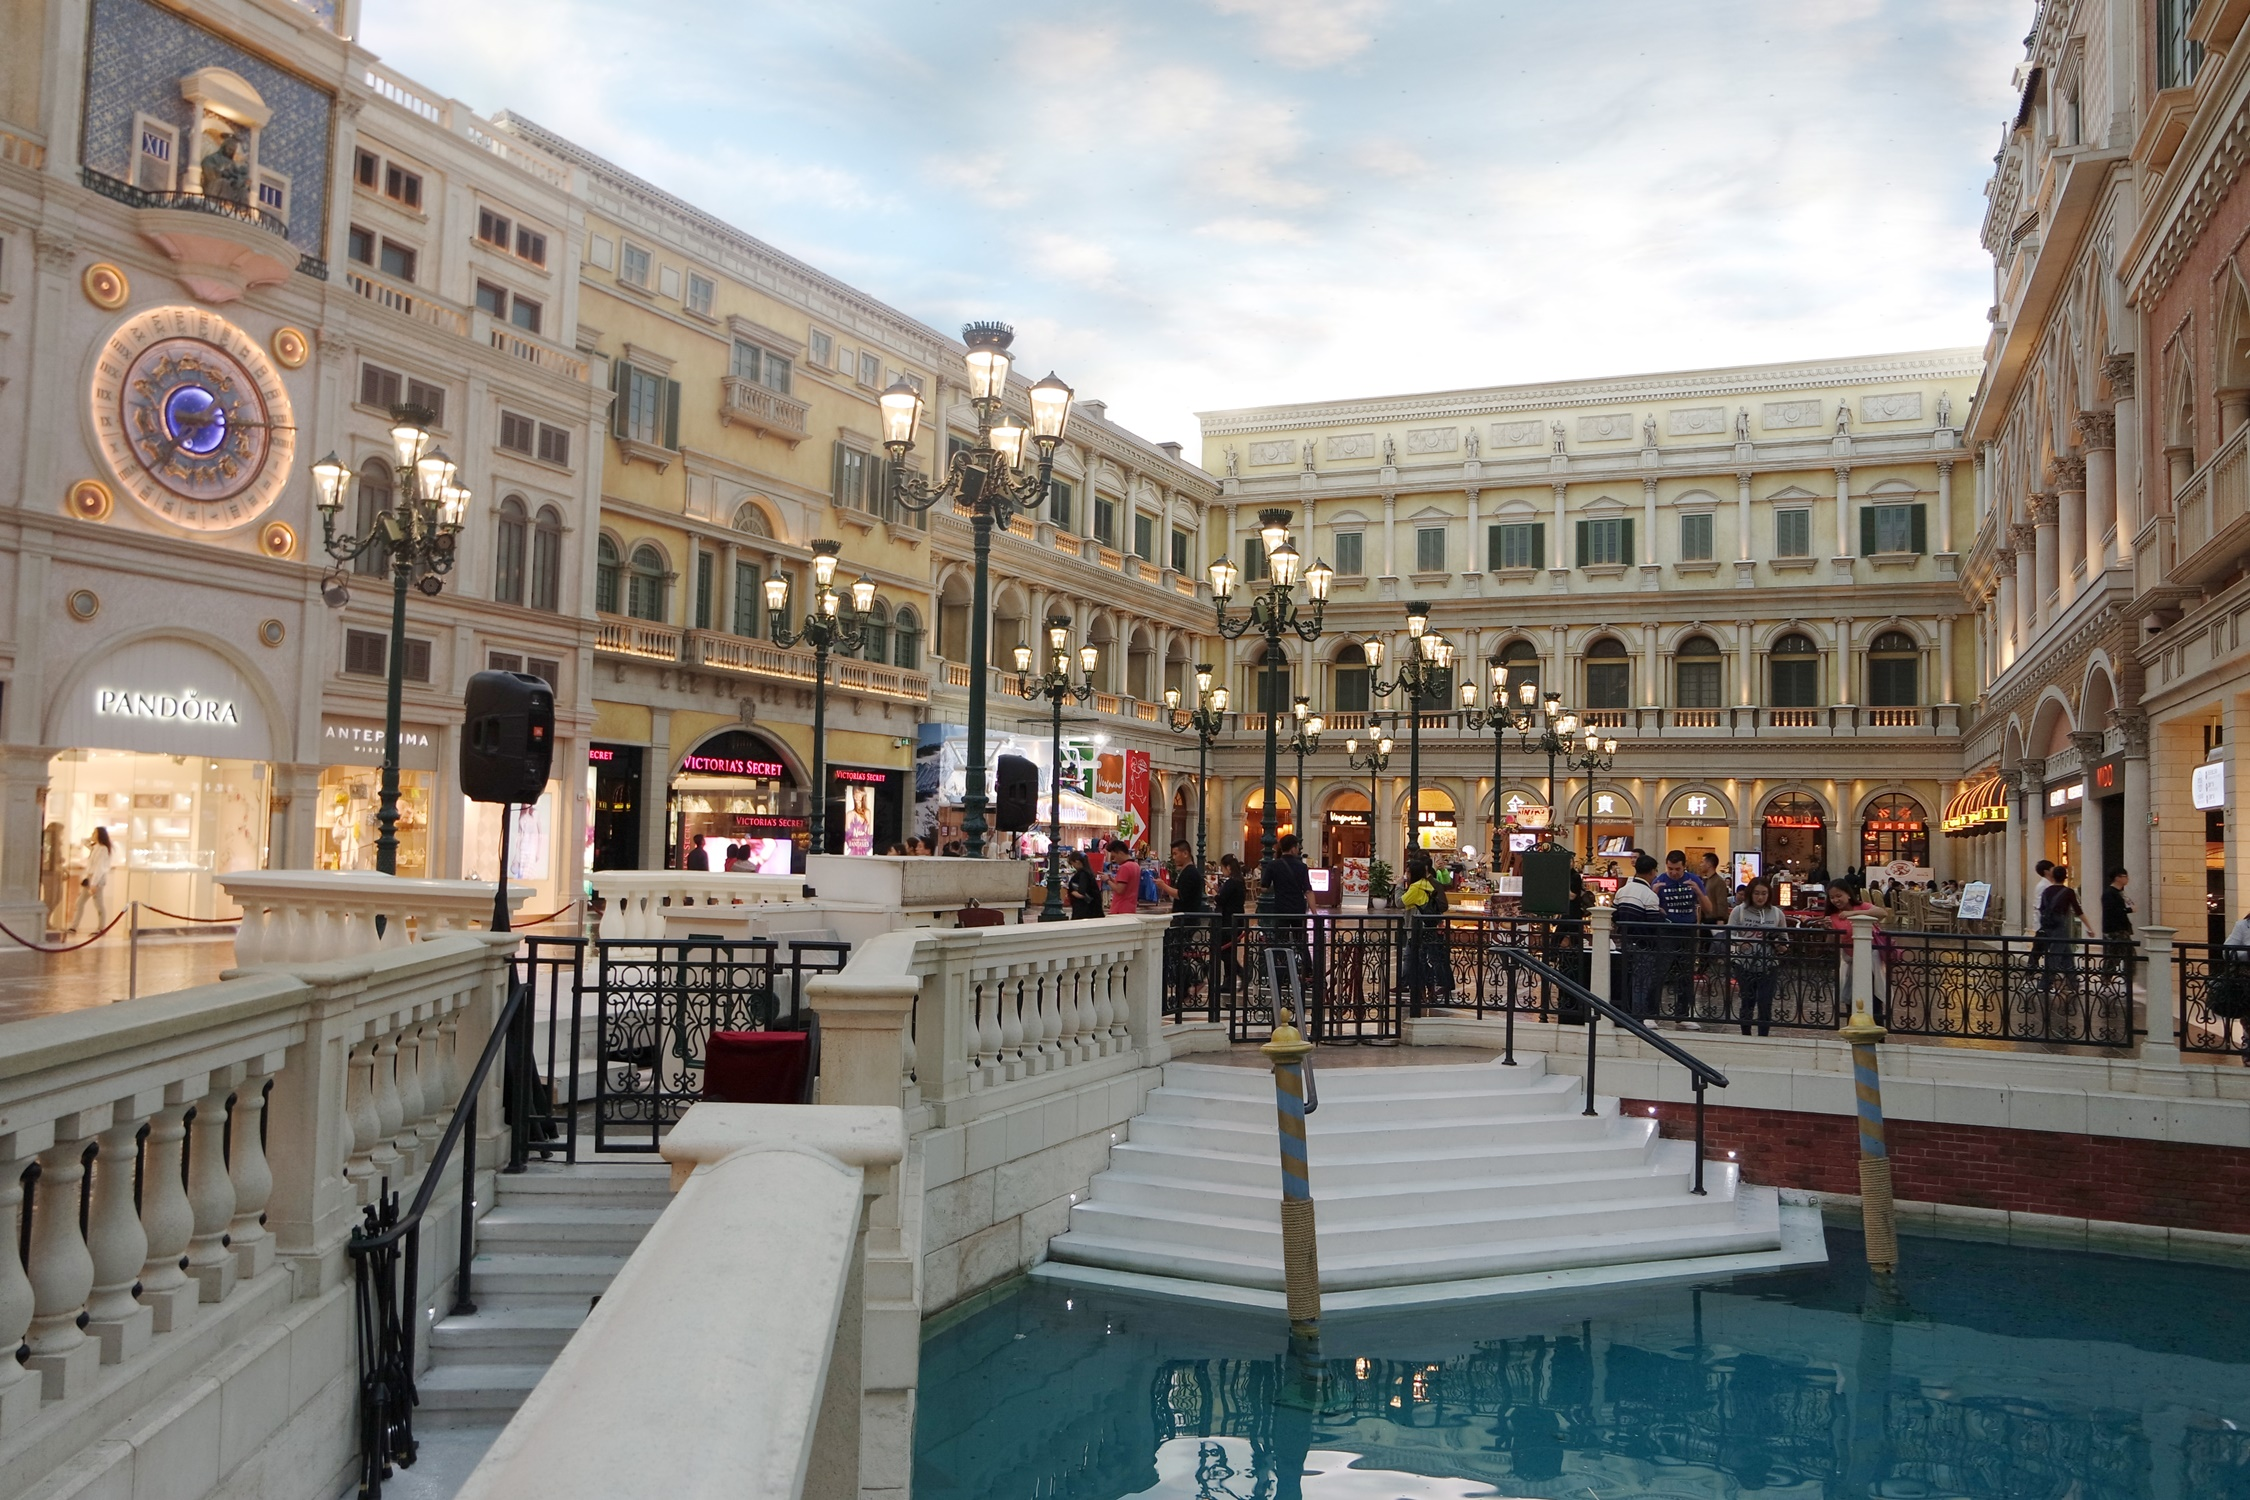 The Venetian Macao Shopping Mall - Sands Shoppes